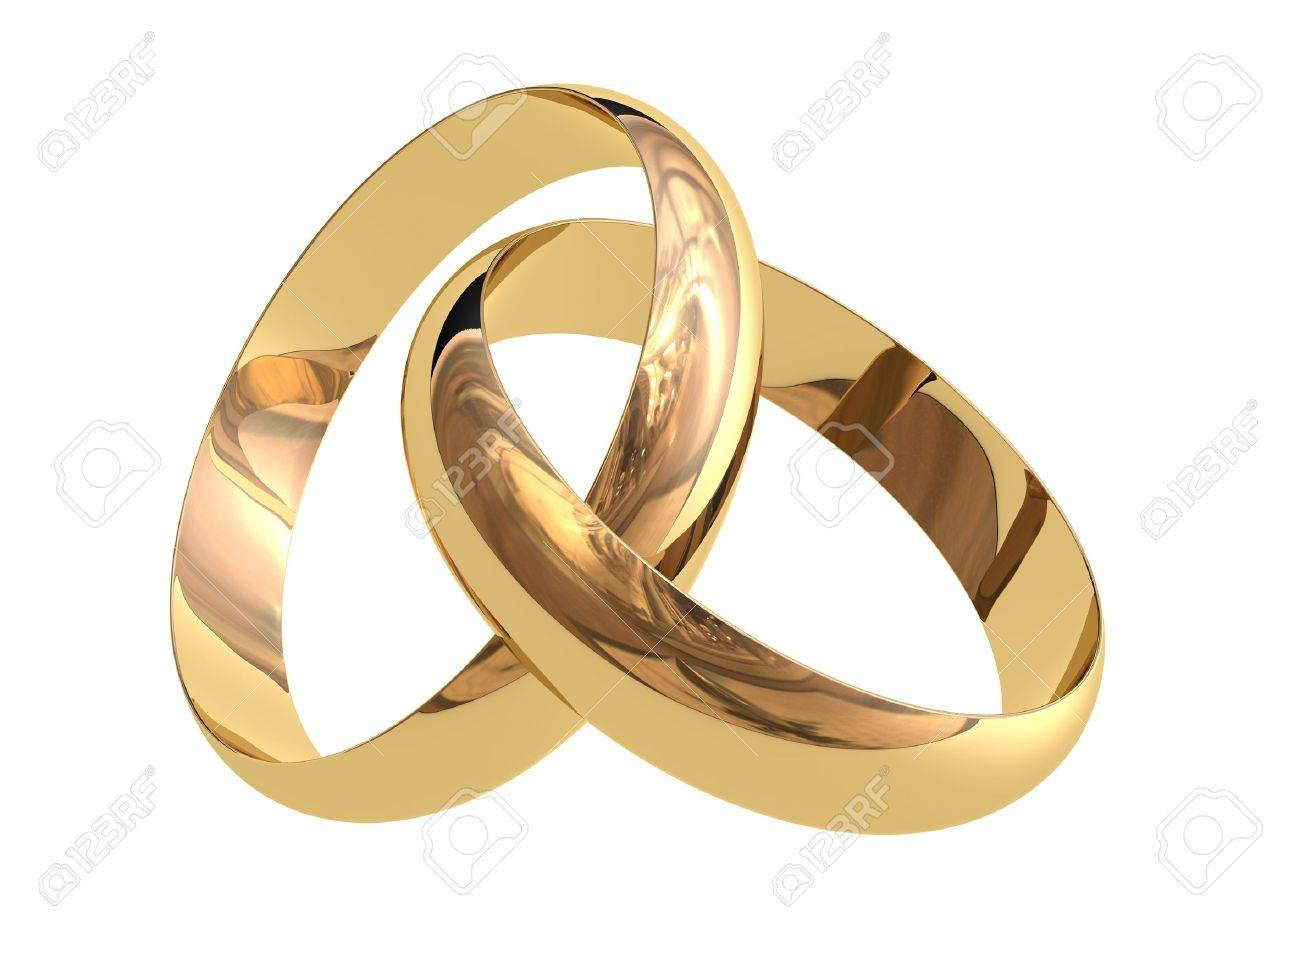 two linked wedding rings on a white background stock photo